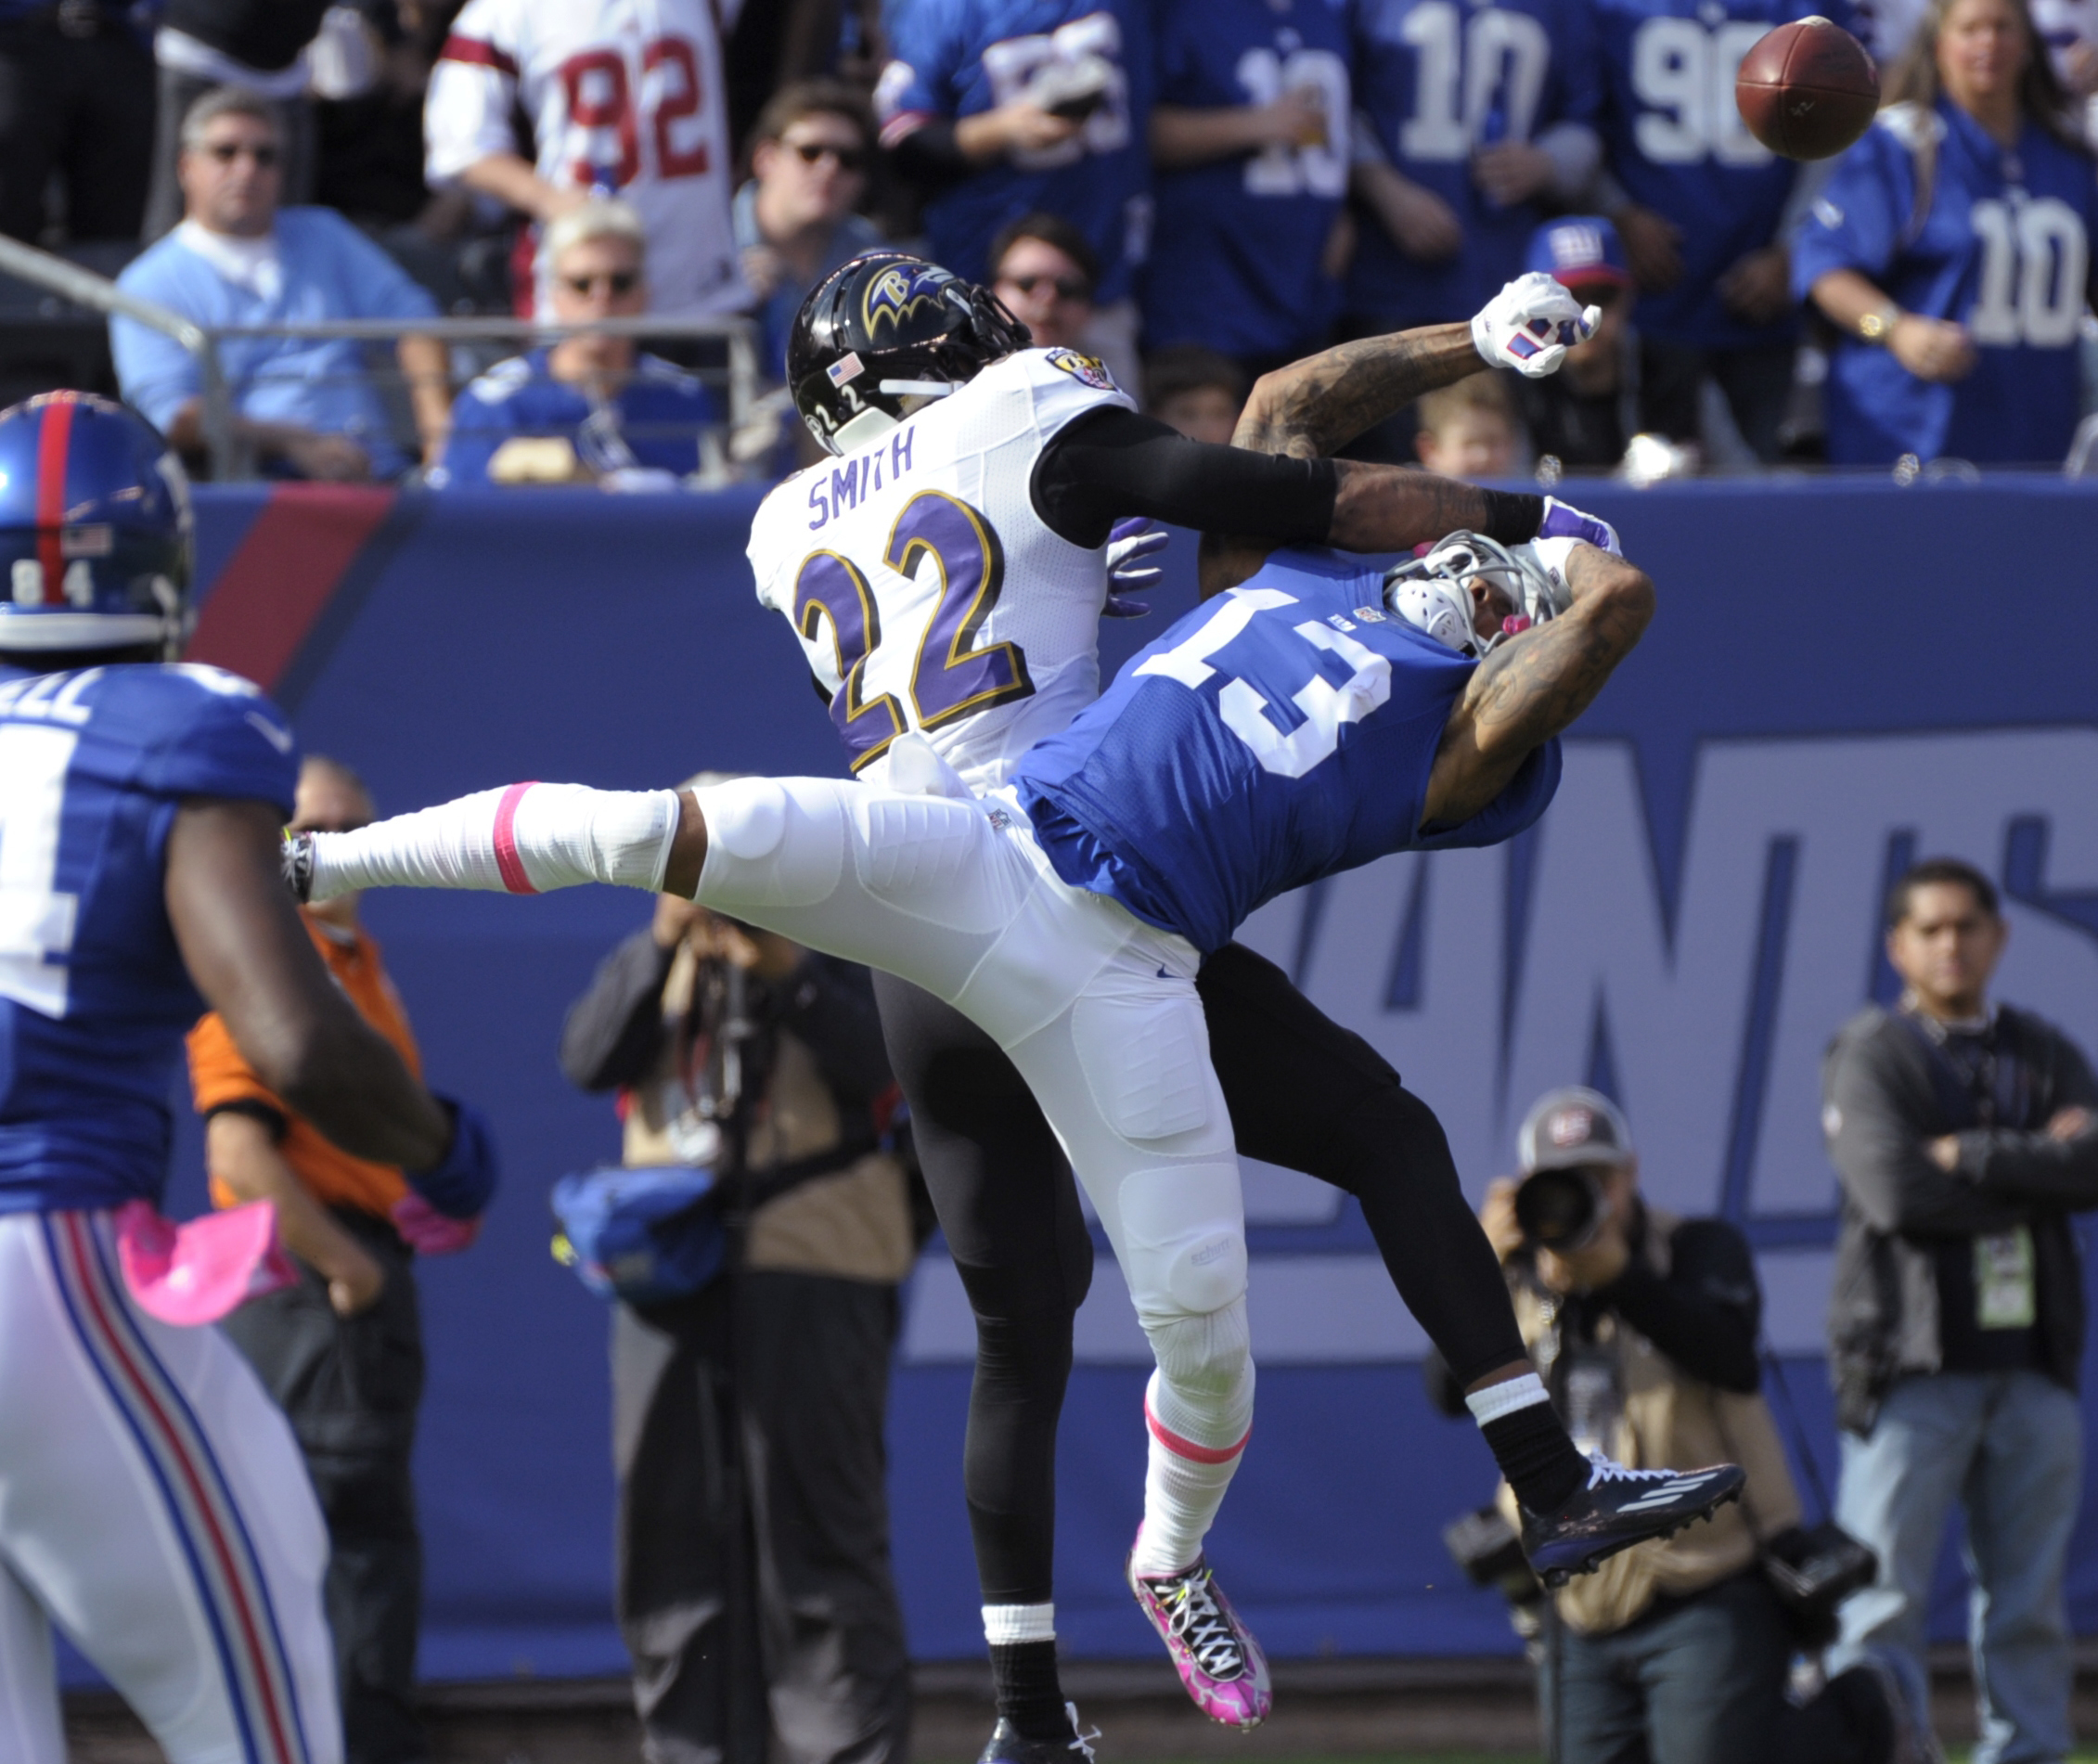 Baltimore Ravens cornerback Jimmy Smith (22) defends New York Giants' Odell Beckham (13) during the first half of an NFL football game, Sunday, Oct. 16, 2016, in East Rutherford, N.J. Beckham was hurt on the play. (AP Photo/Bill Kostroun)